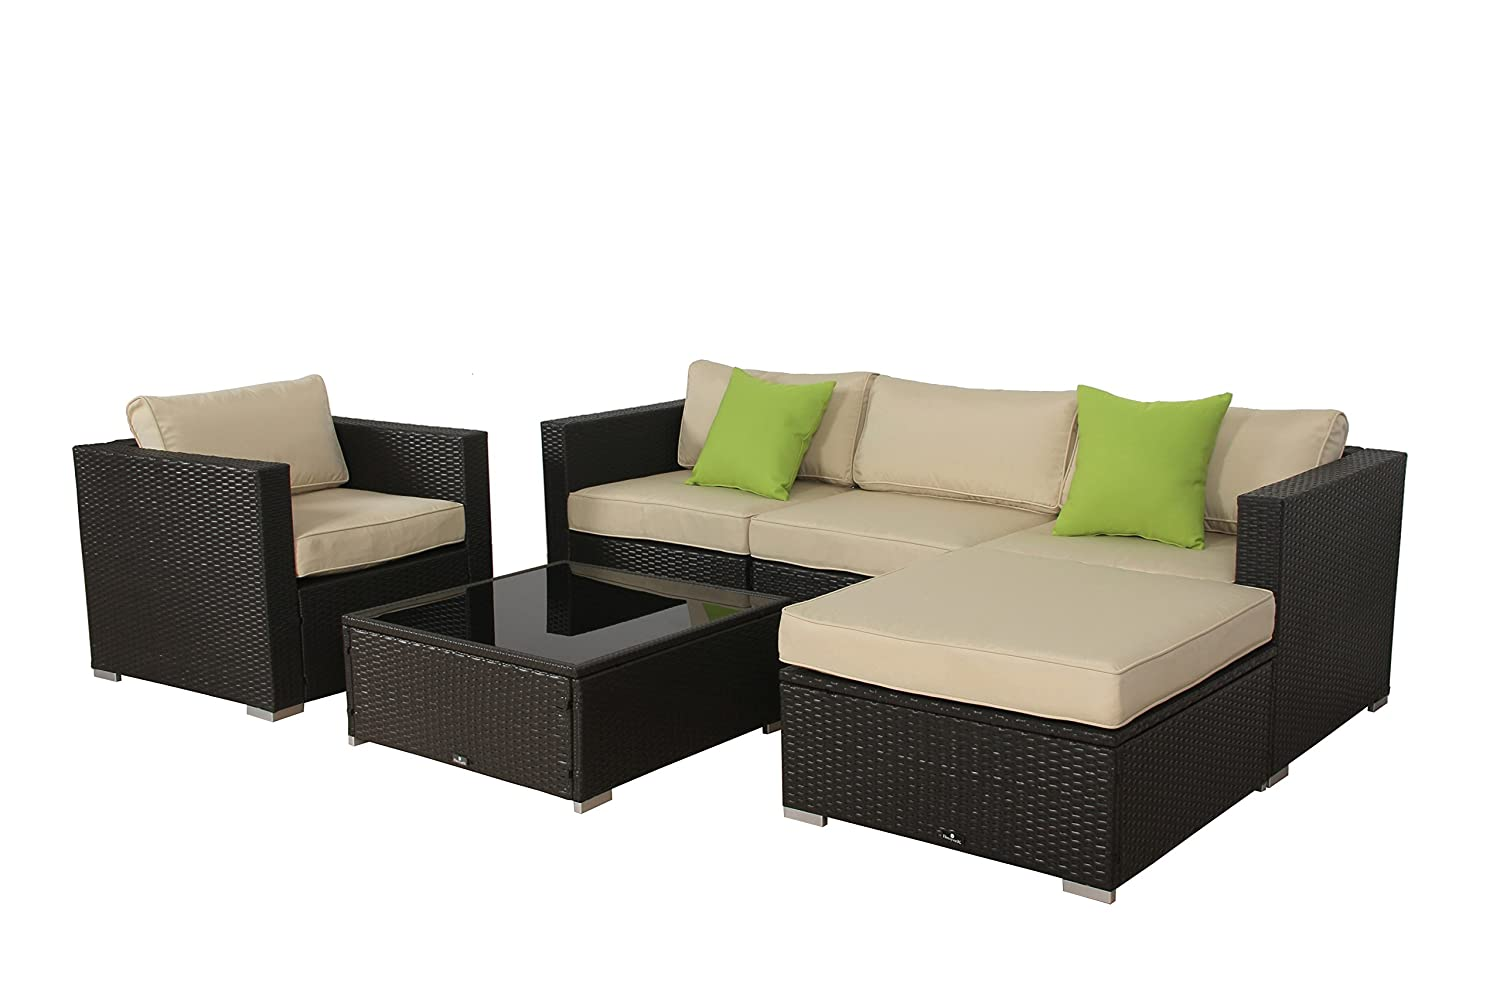 Rattan set  Amazon.com : BroyerK 6 Pcs Beige Outdoor Rattan Set Sofa Wicker ...